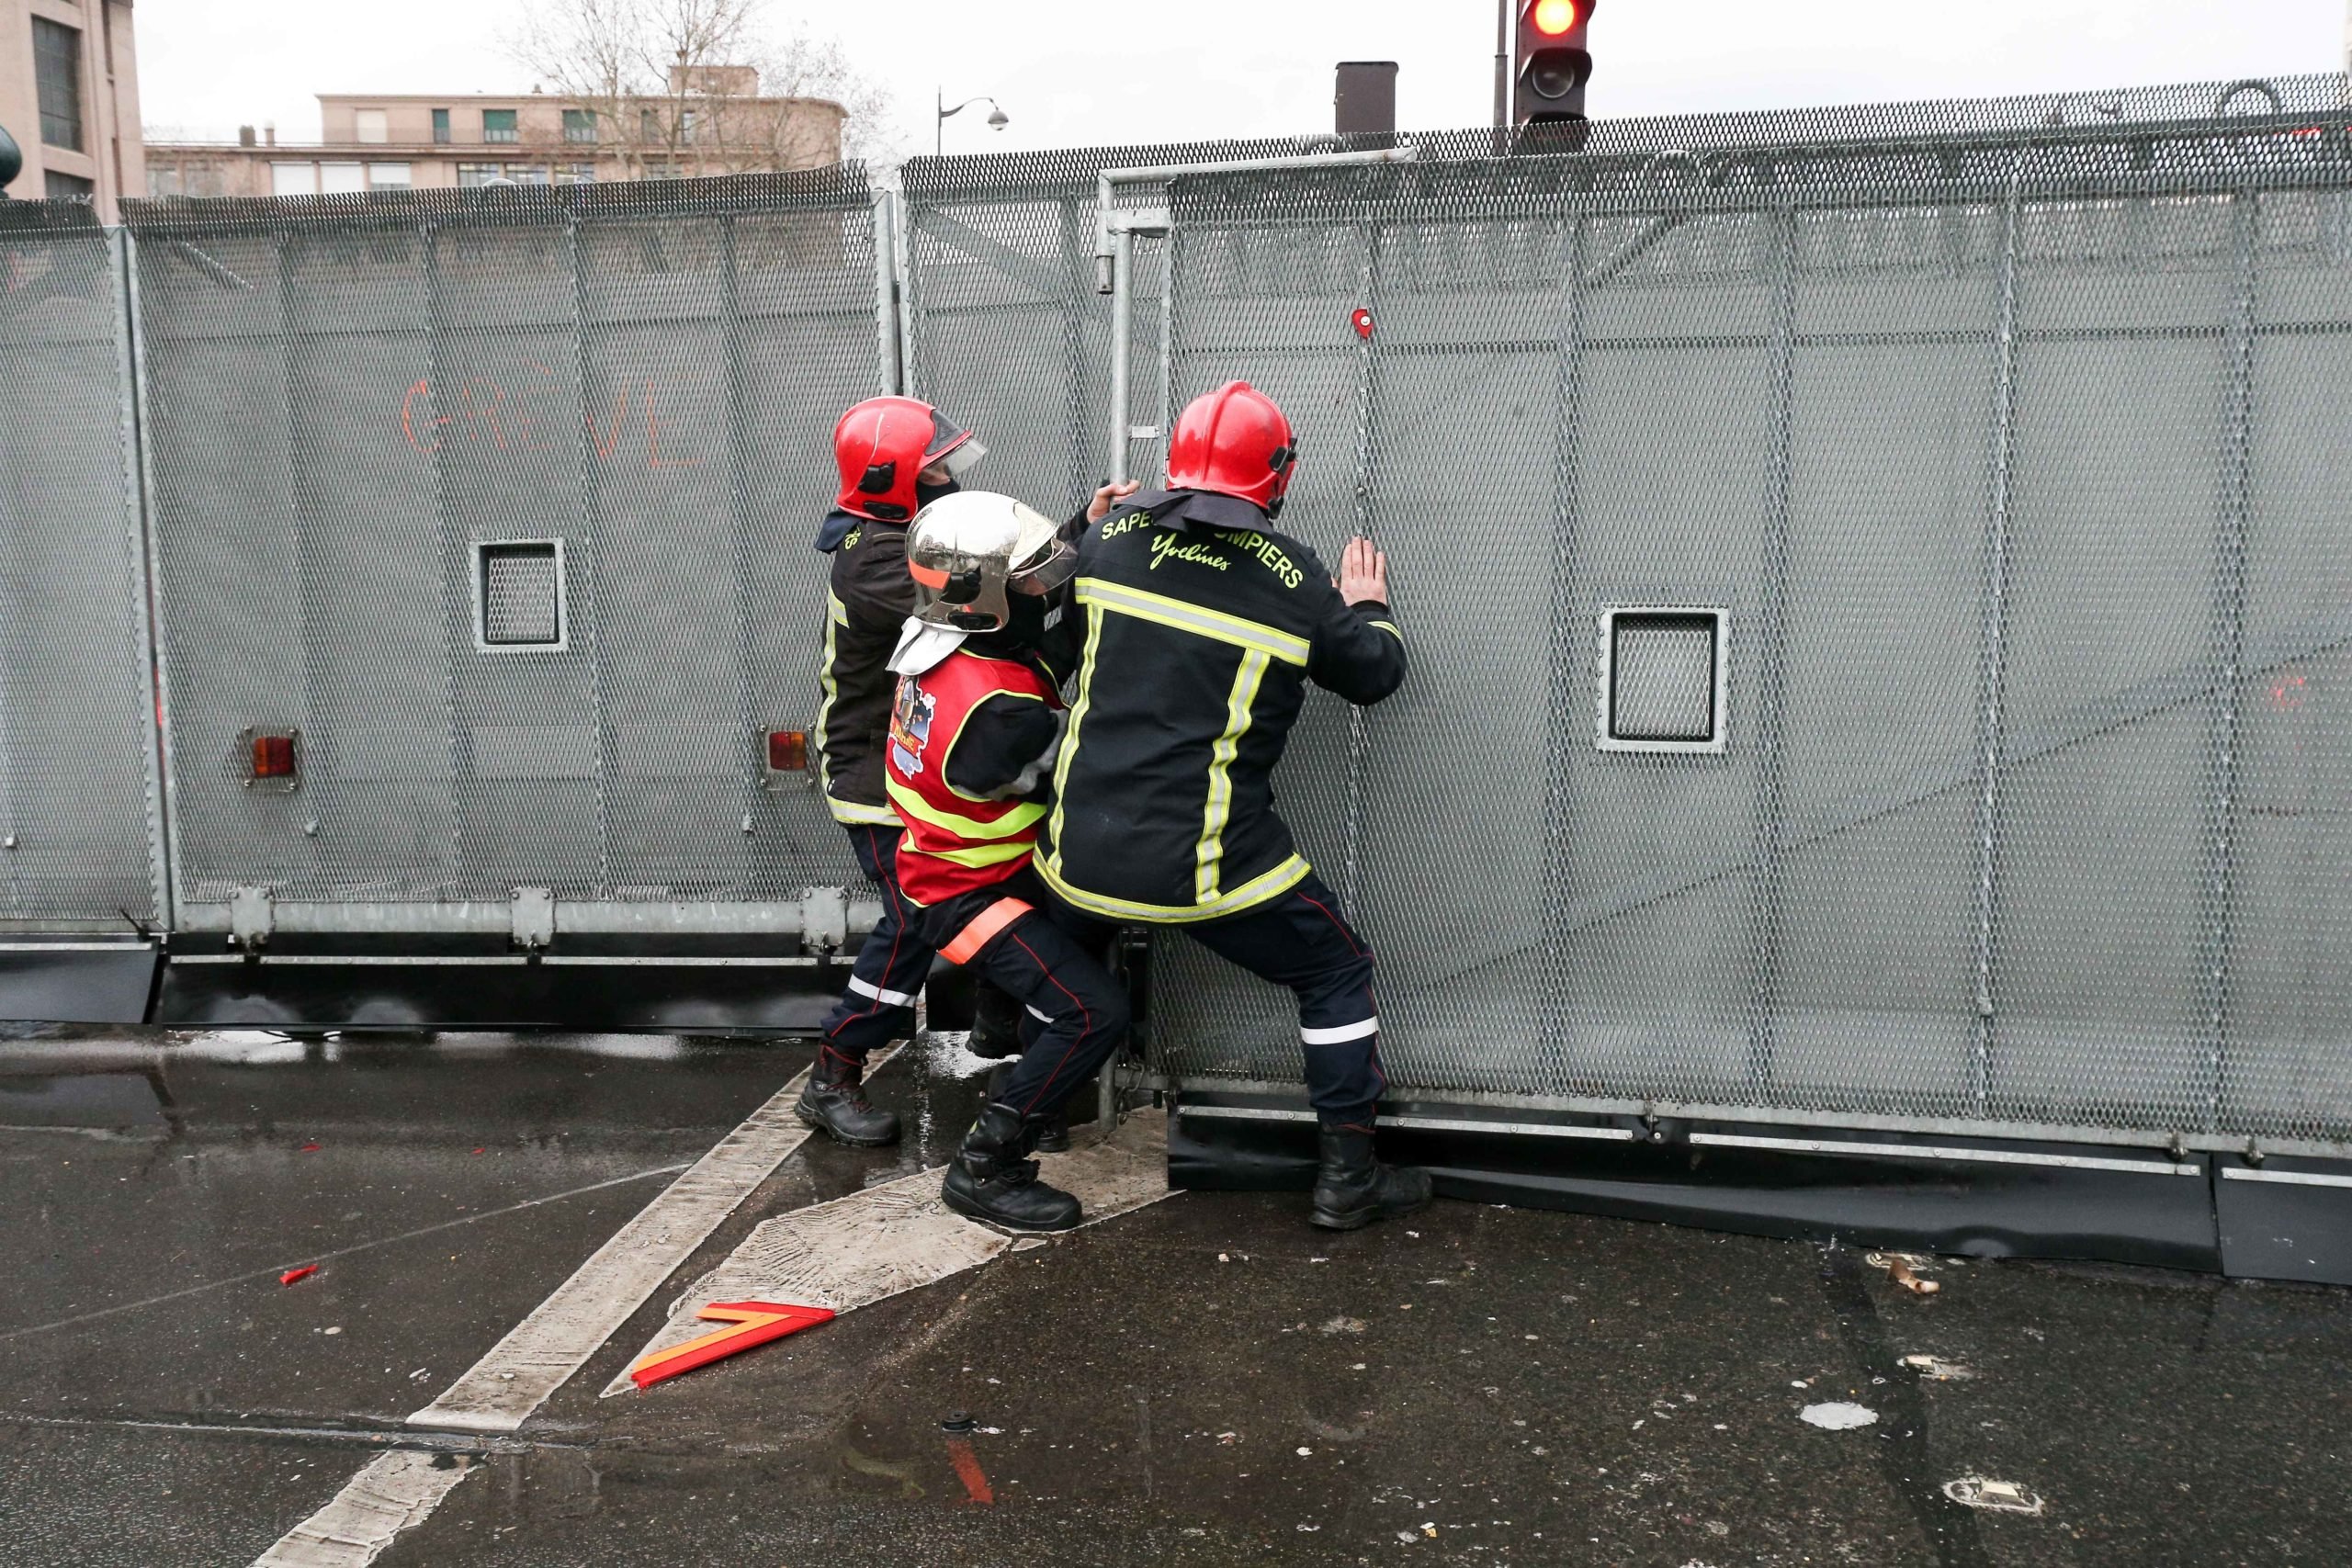 Three firefighters try to open a path in a riot barricade during a demonstration to protest against French government's plan to overhaul the country's retirement system in Paris, on January 28, 2020.